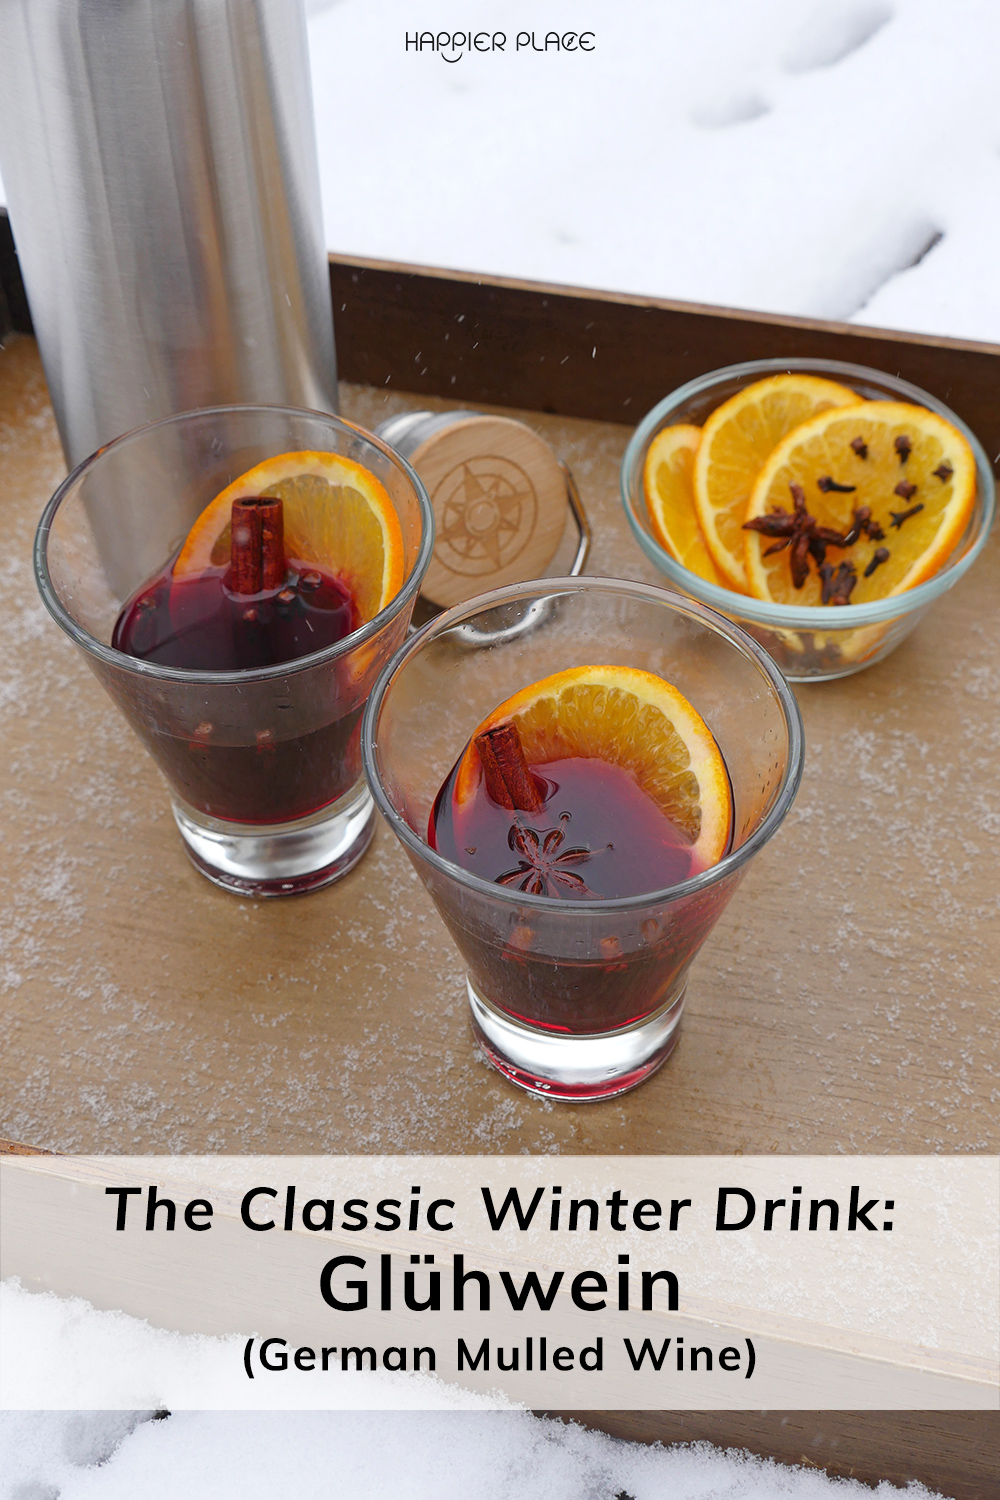 The Classic Winter Drink: Glühwein (German Mulled Wine)